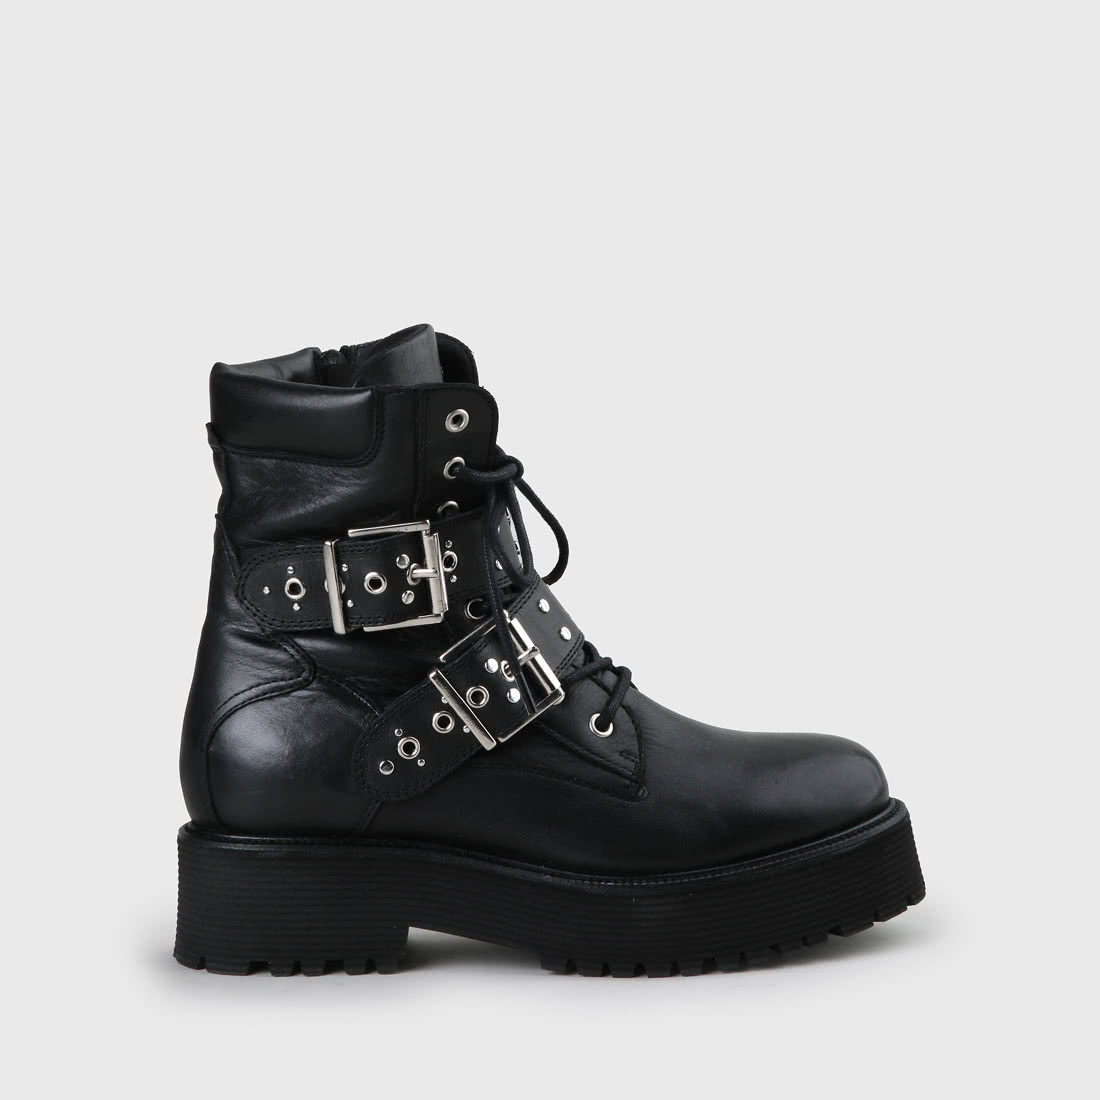 new style 14362 a19b6 Fiji Boot leather black